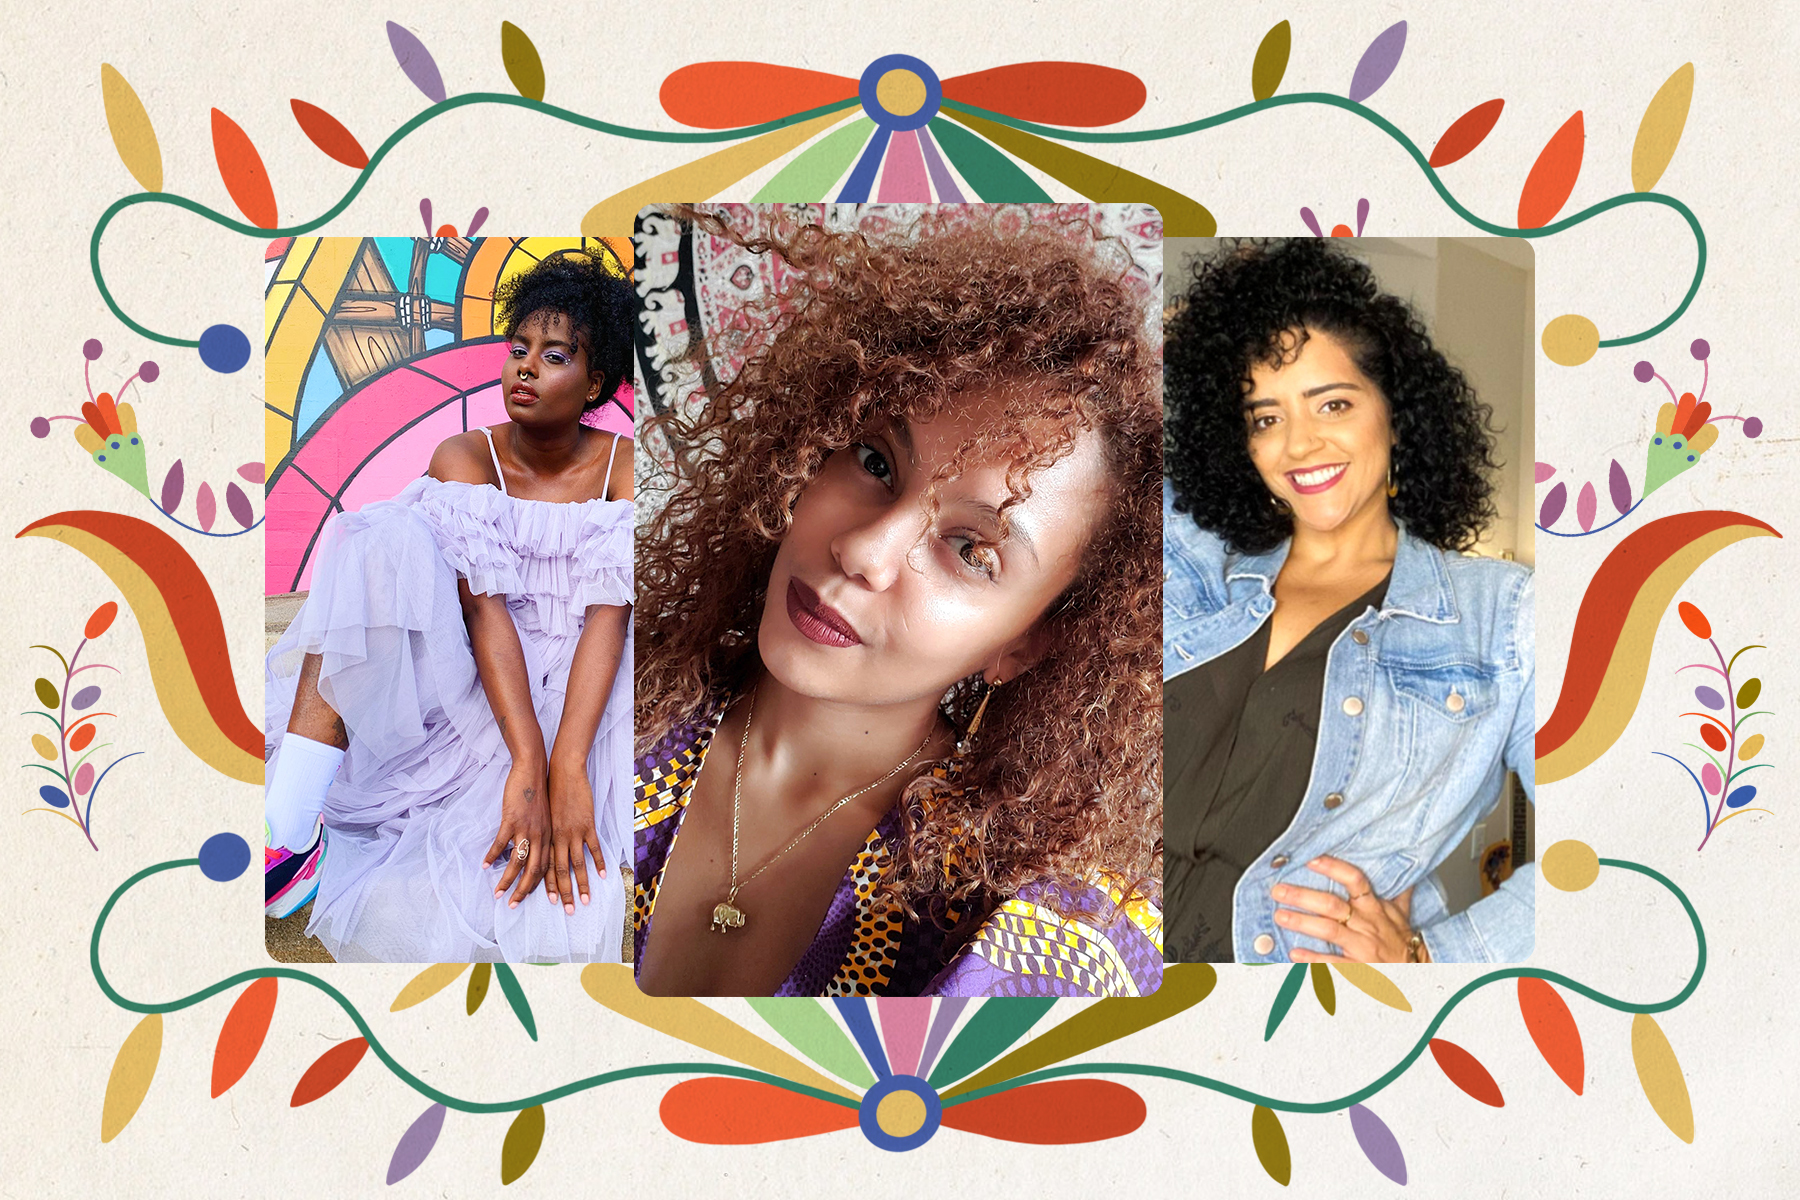 afro-latinx fashion influence